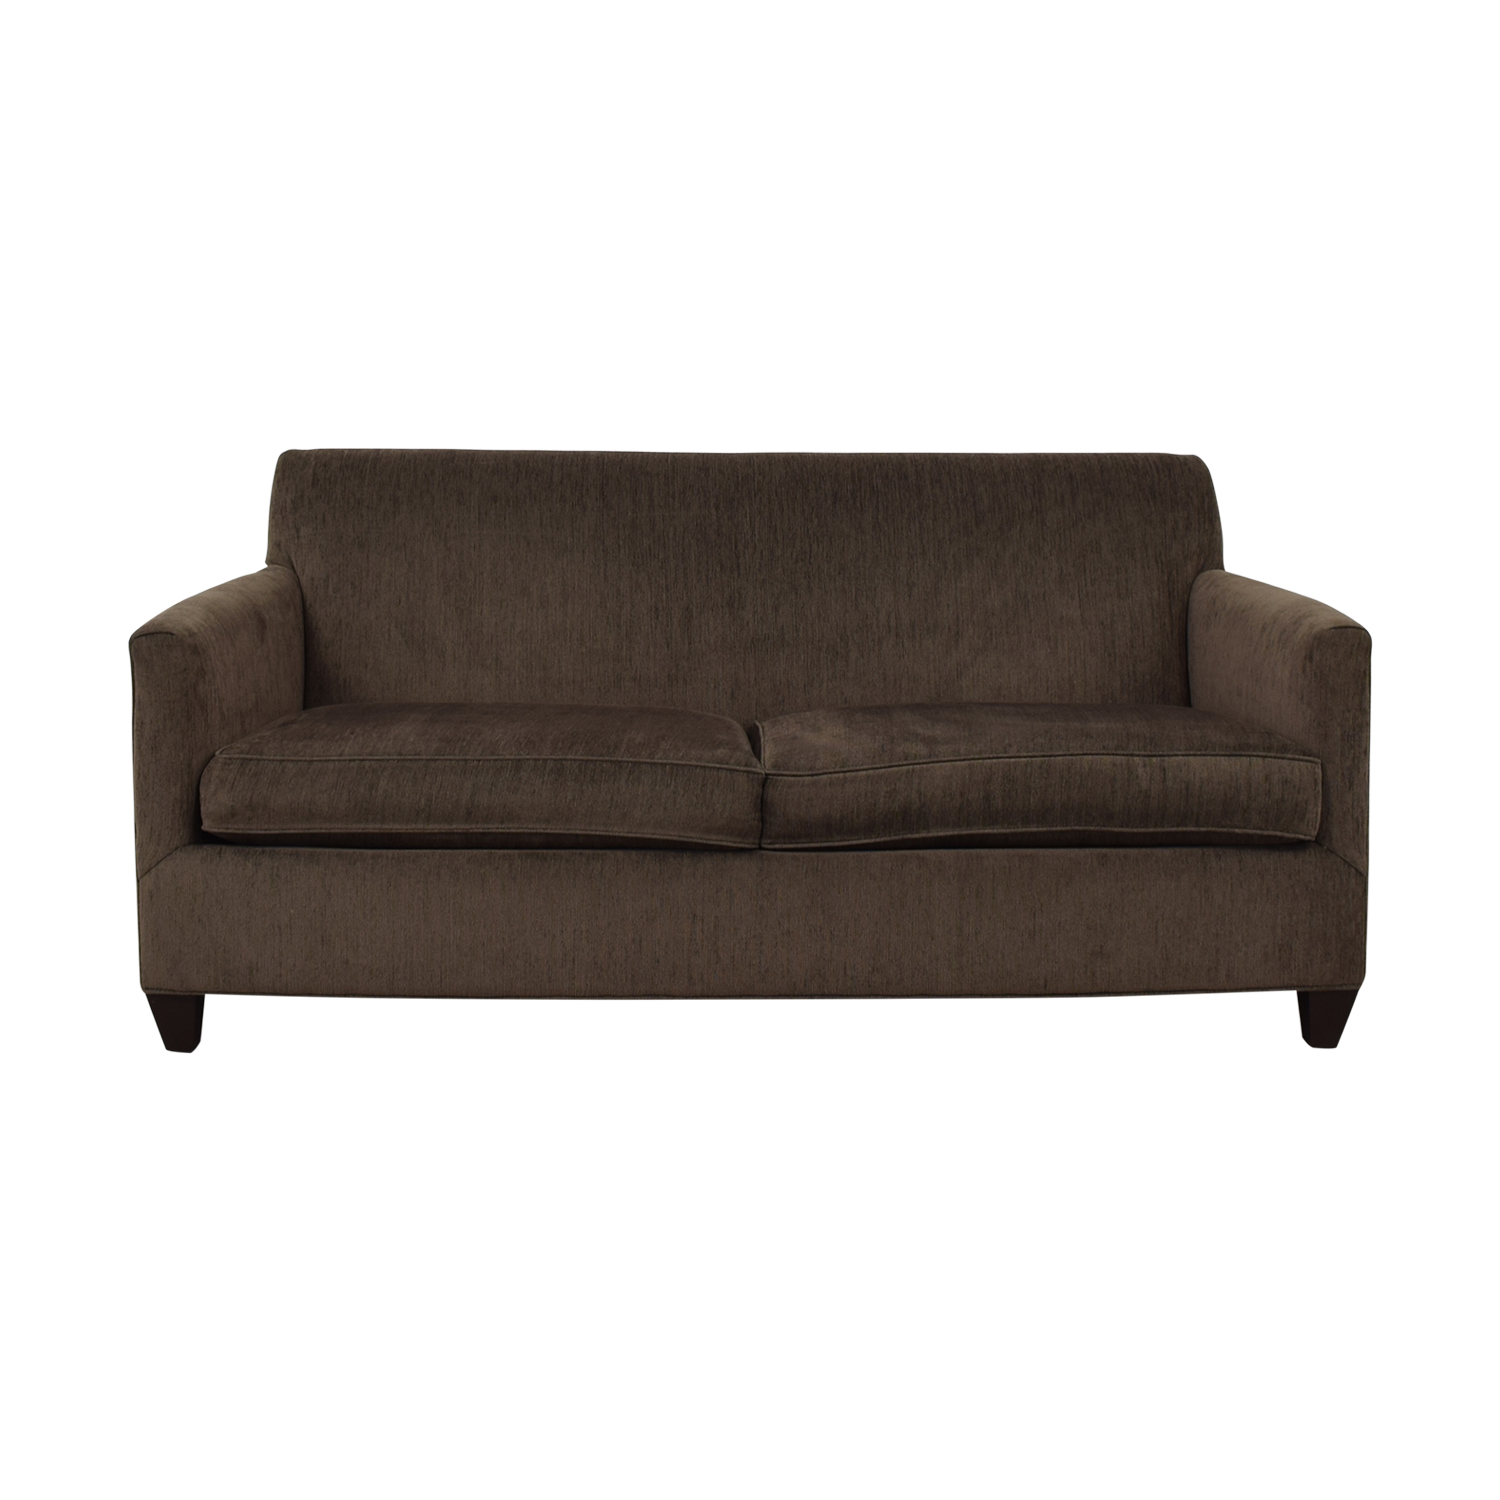 Young's Furniture Young's Furniture Two-Cushion Sofa nyc